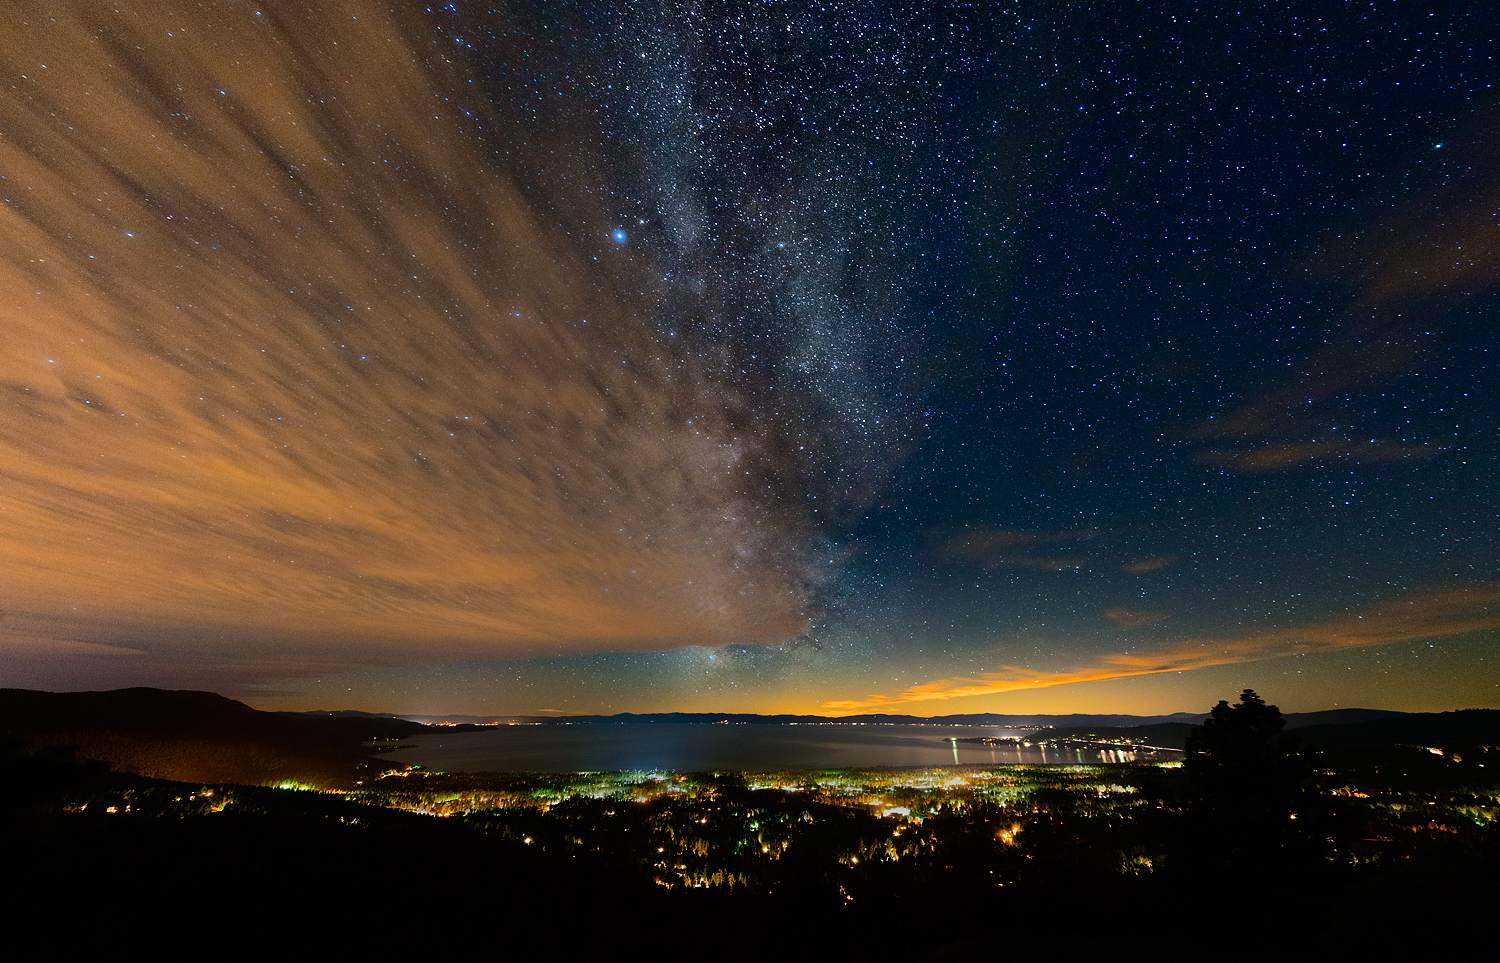 Milkyway and Clouds Over Incline Village, Nevada, Lake Tahoe